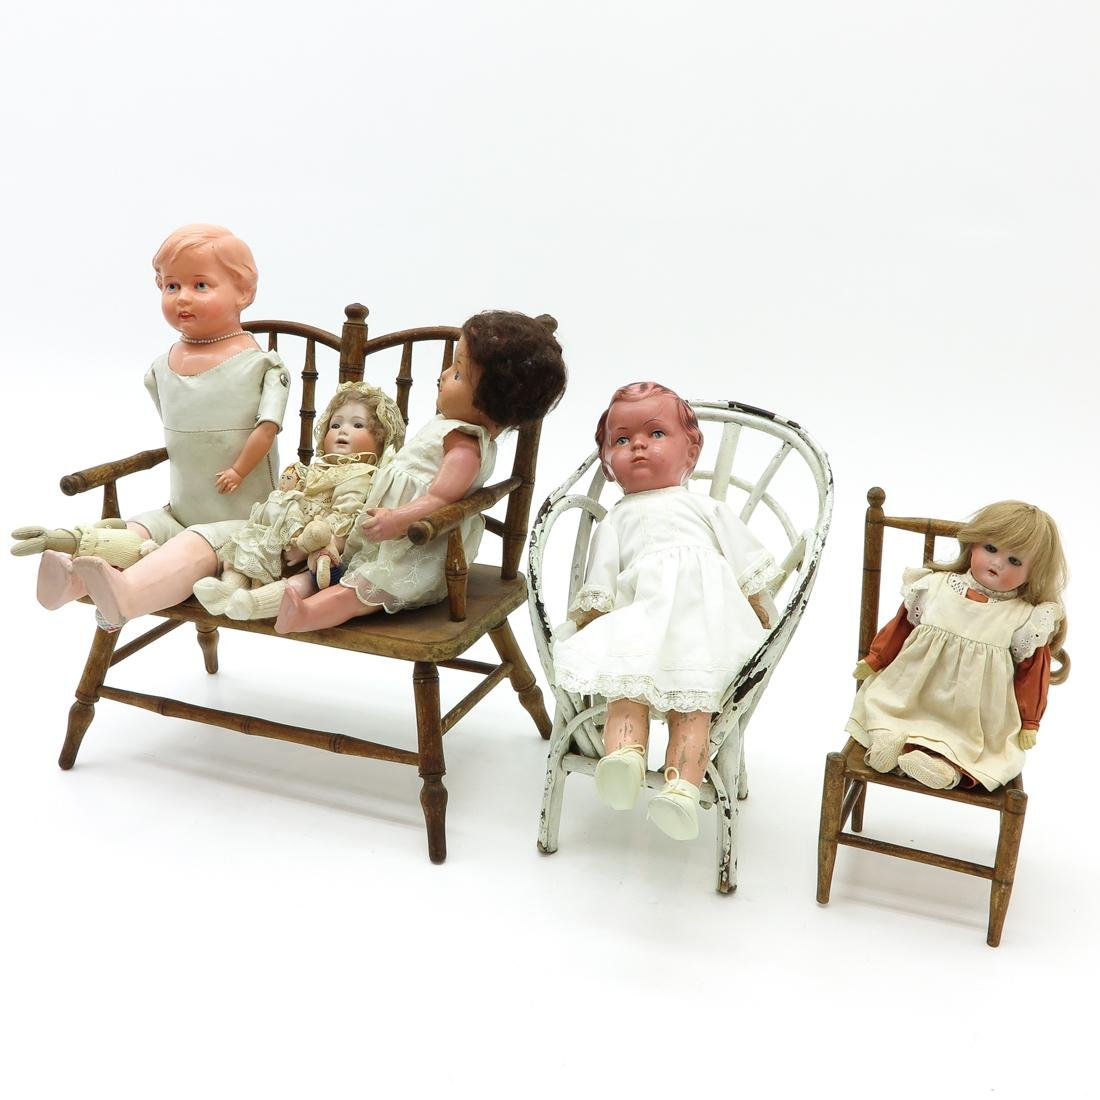 Diverse Lot of Vintage Dolls and Doll Furniture - 3